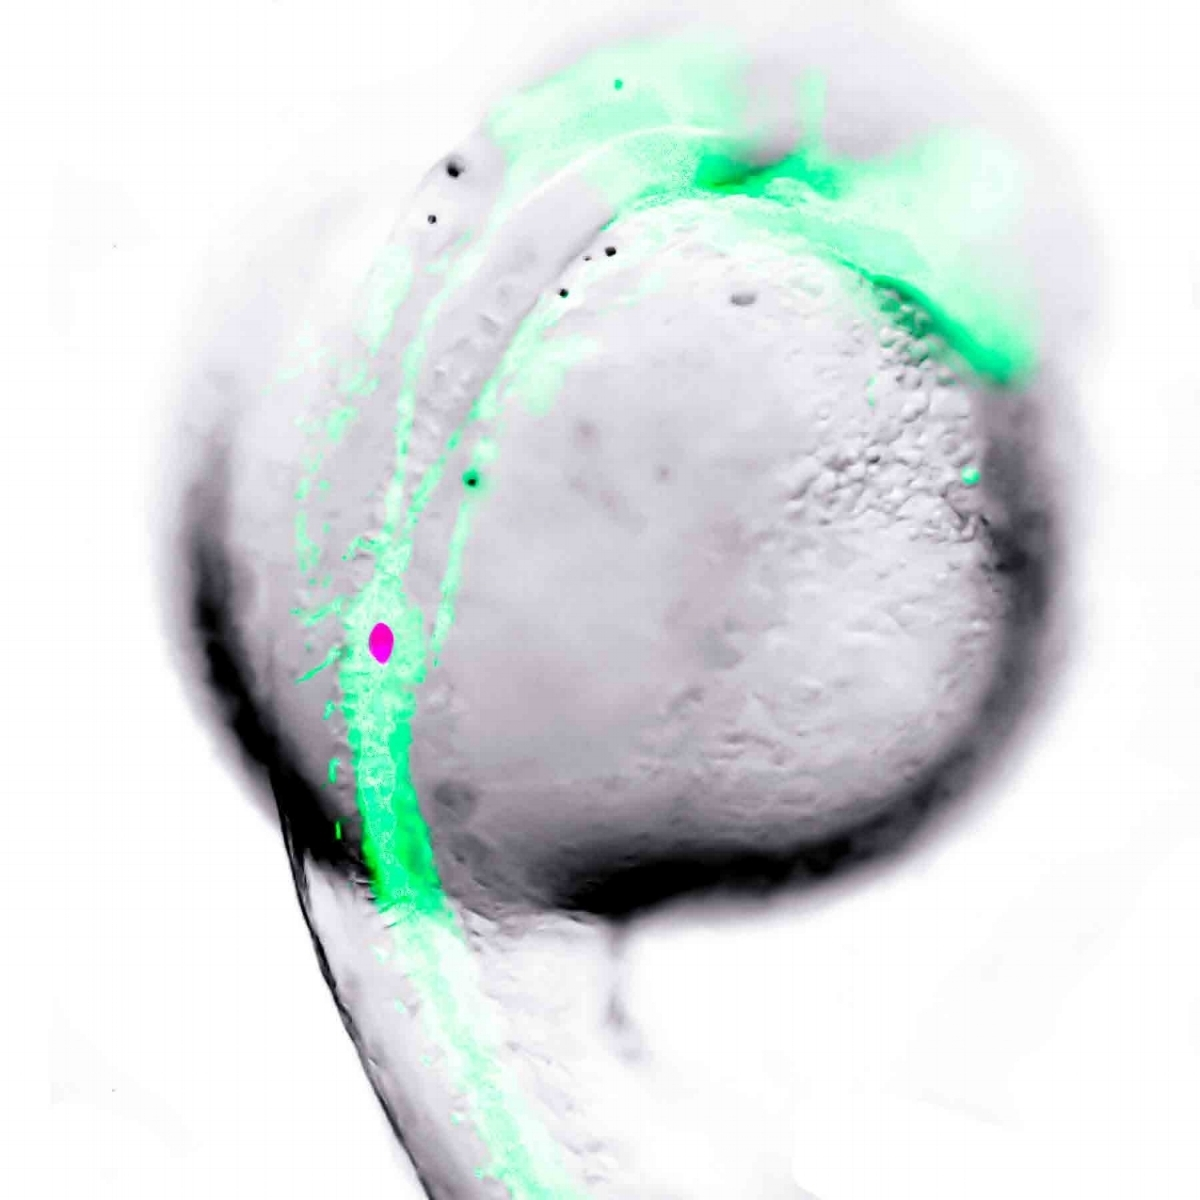 beta-cell development in the zebrafish. one day old transgenic zebrafish embryo with developing vasculature and beta-cells labelled with green and red fluorescent protein, respectively.